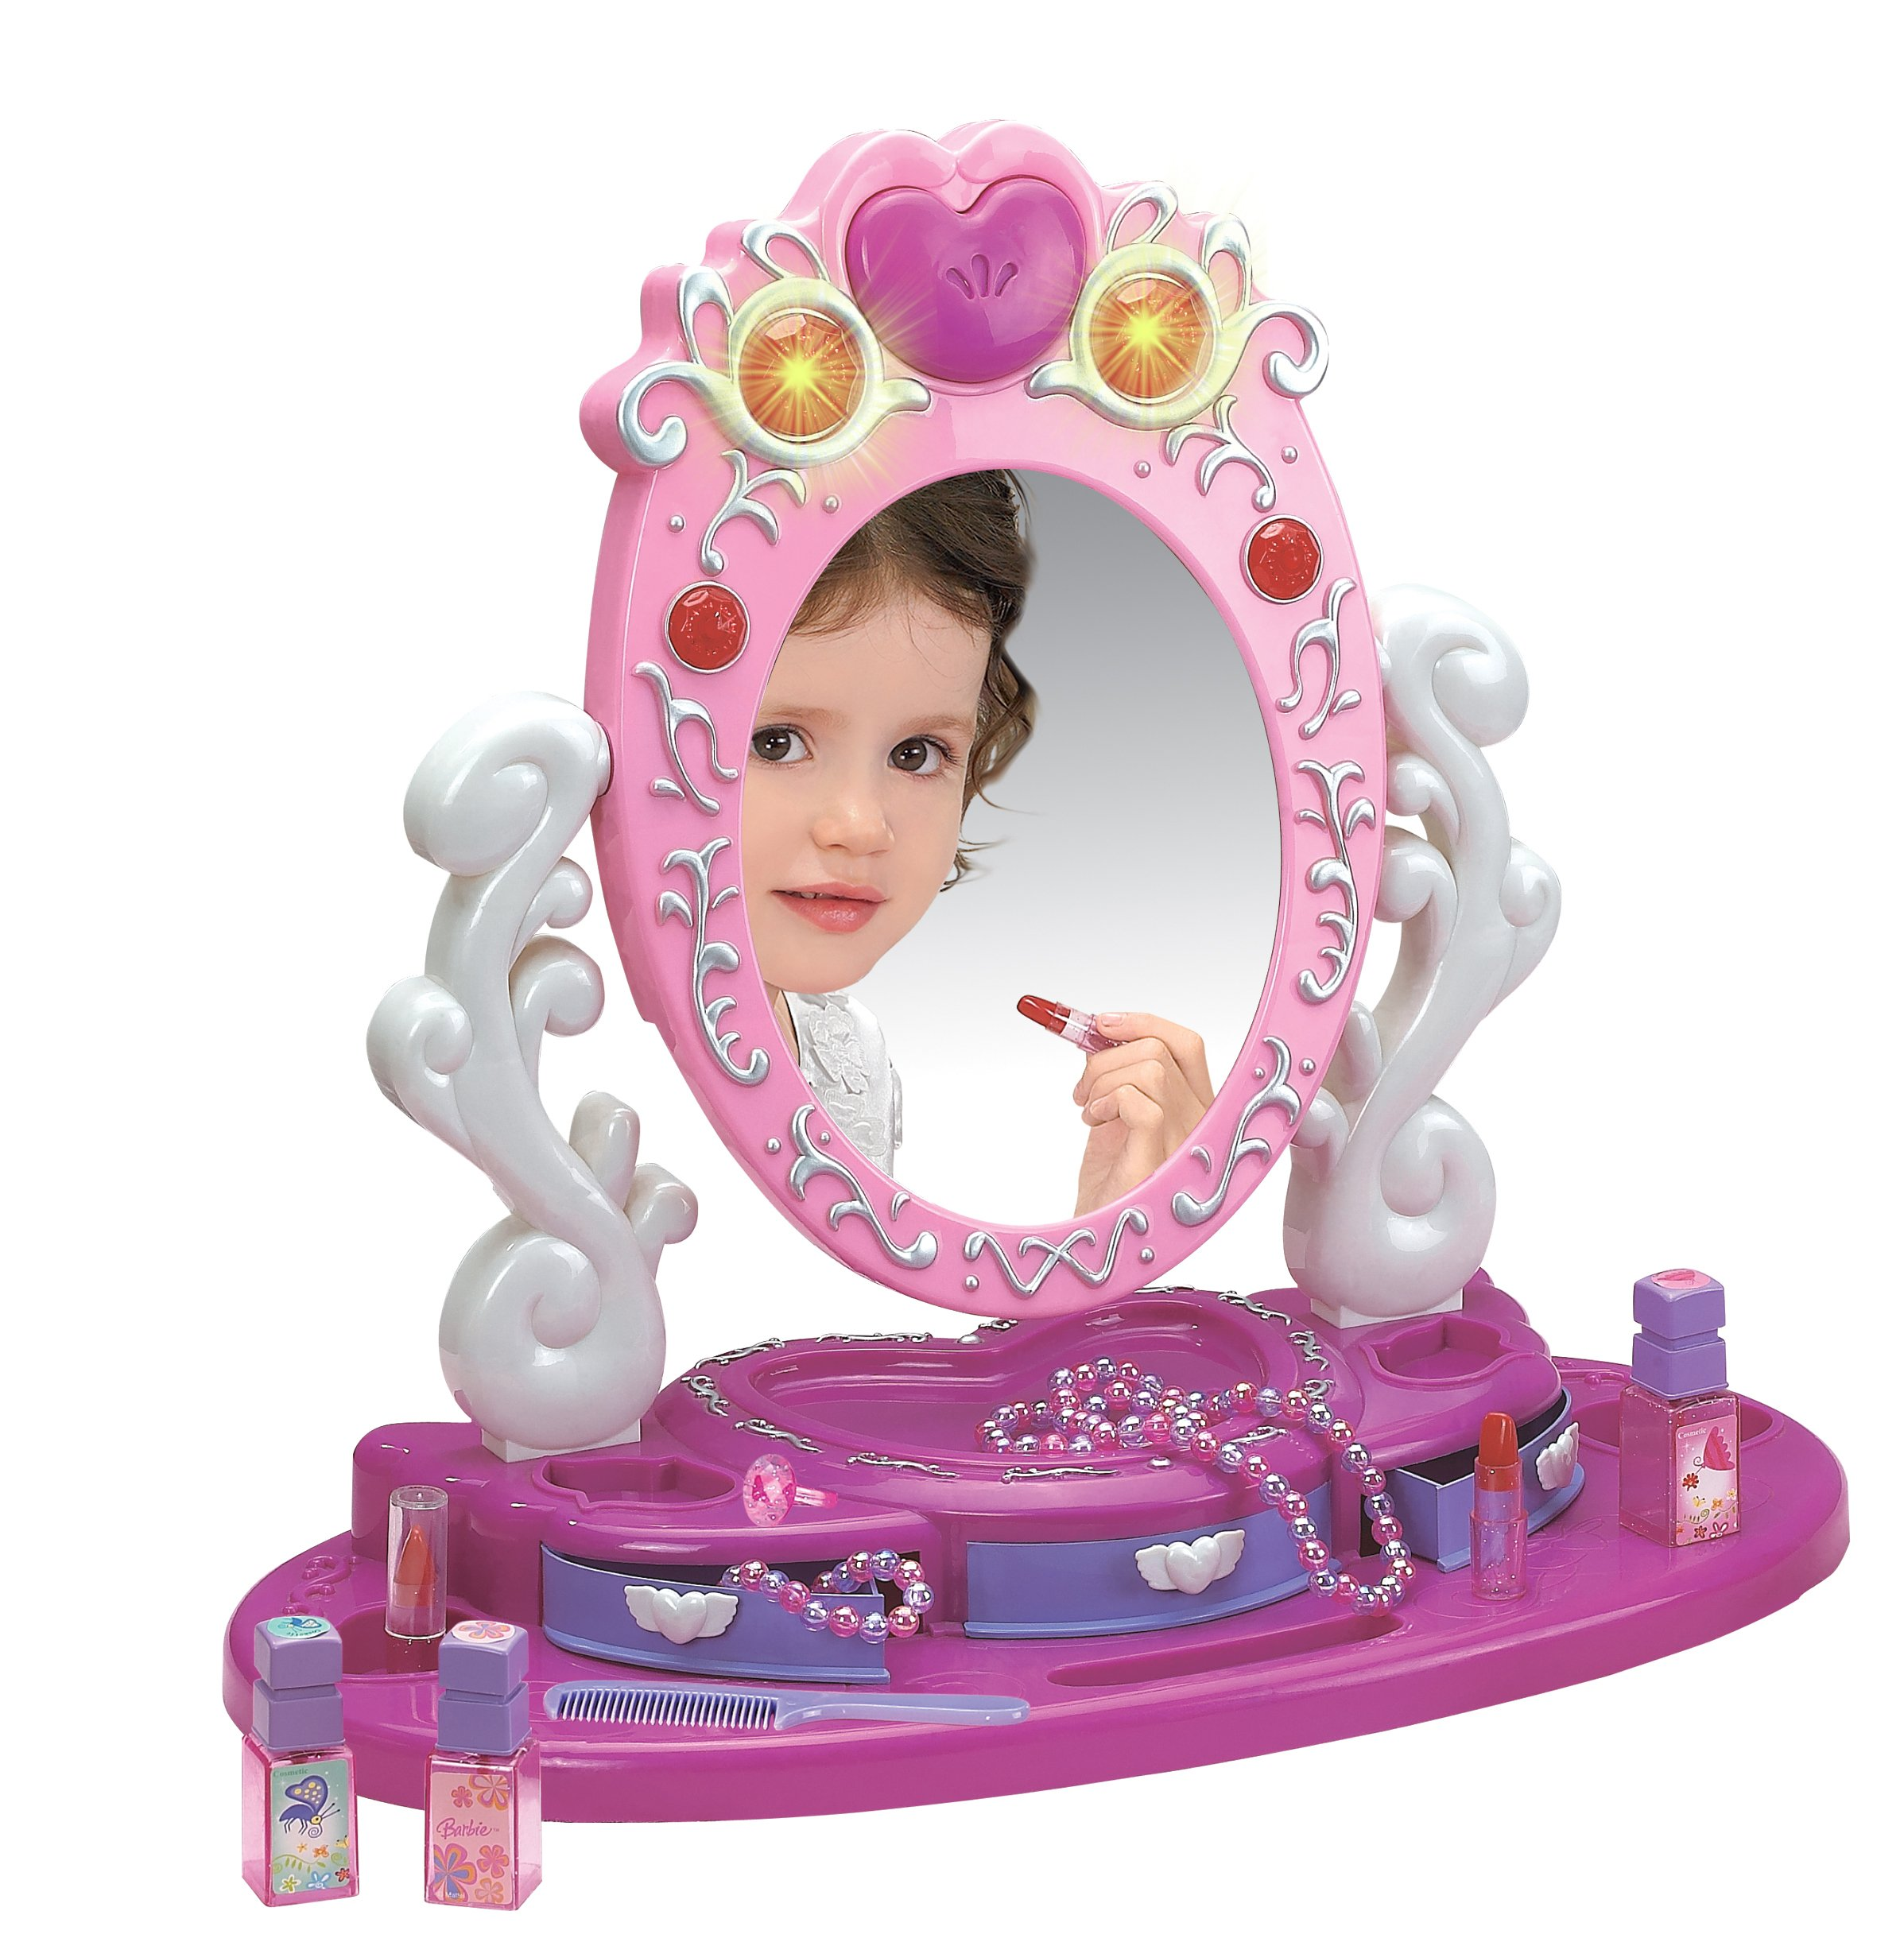 Dresser Vanity Beauty Set - Pink Princess Pretend Play Dressing Table Top Set with Makeup Mirror, Jewelry and Accessories - Music and Lights for Little Girls by Liberty Imports